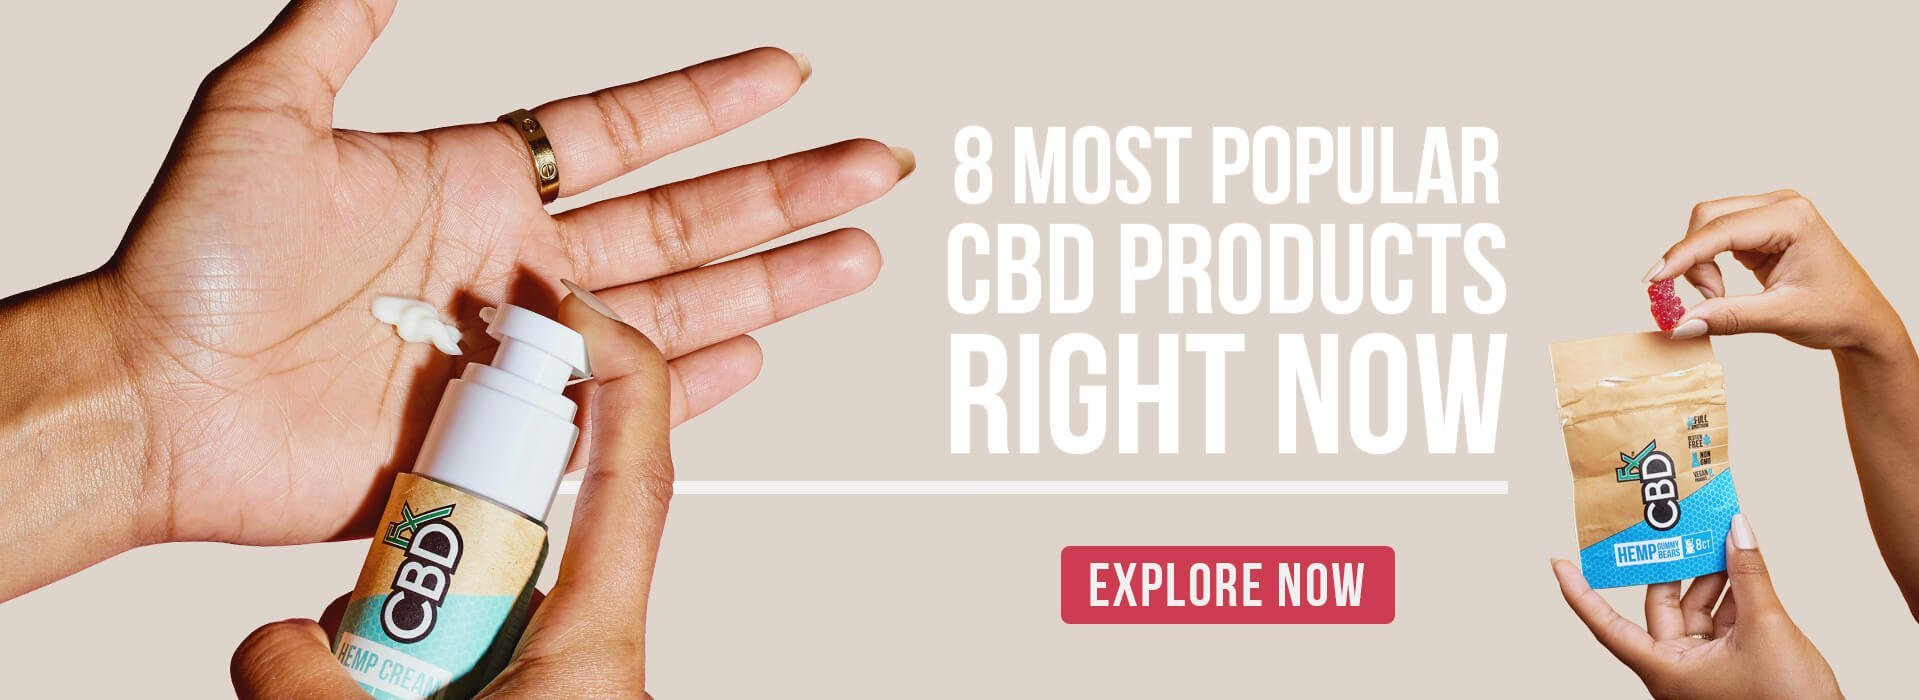 CBDfx 8 most popular cbd products right now